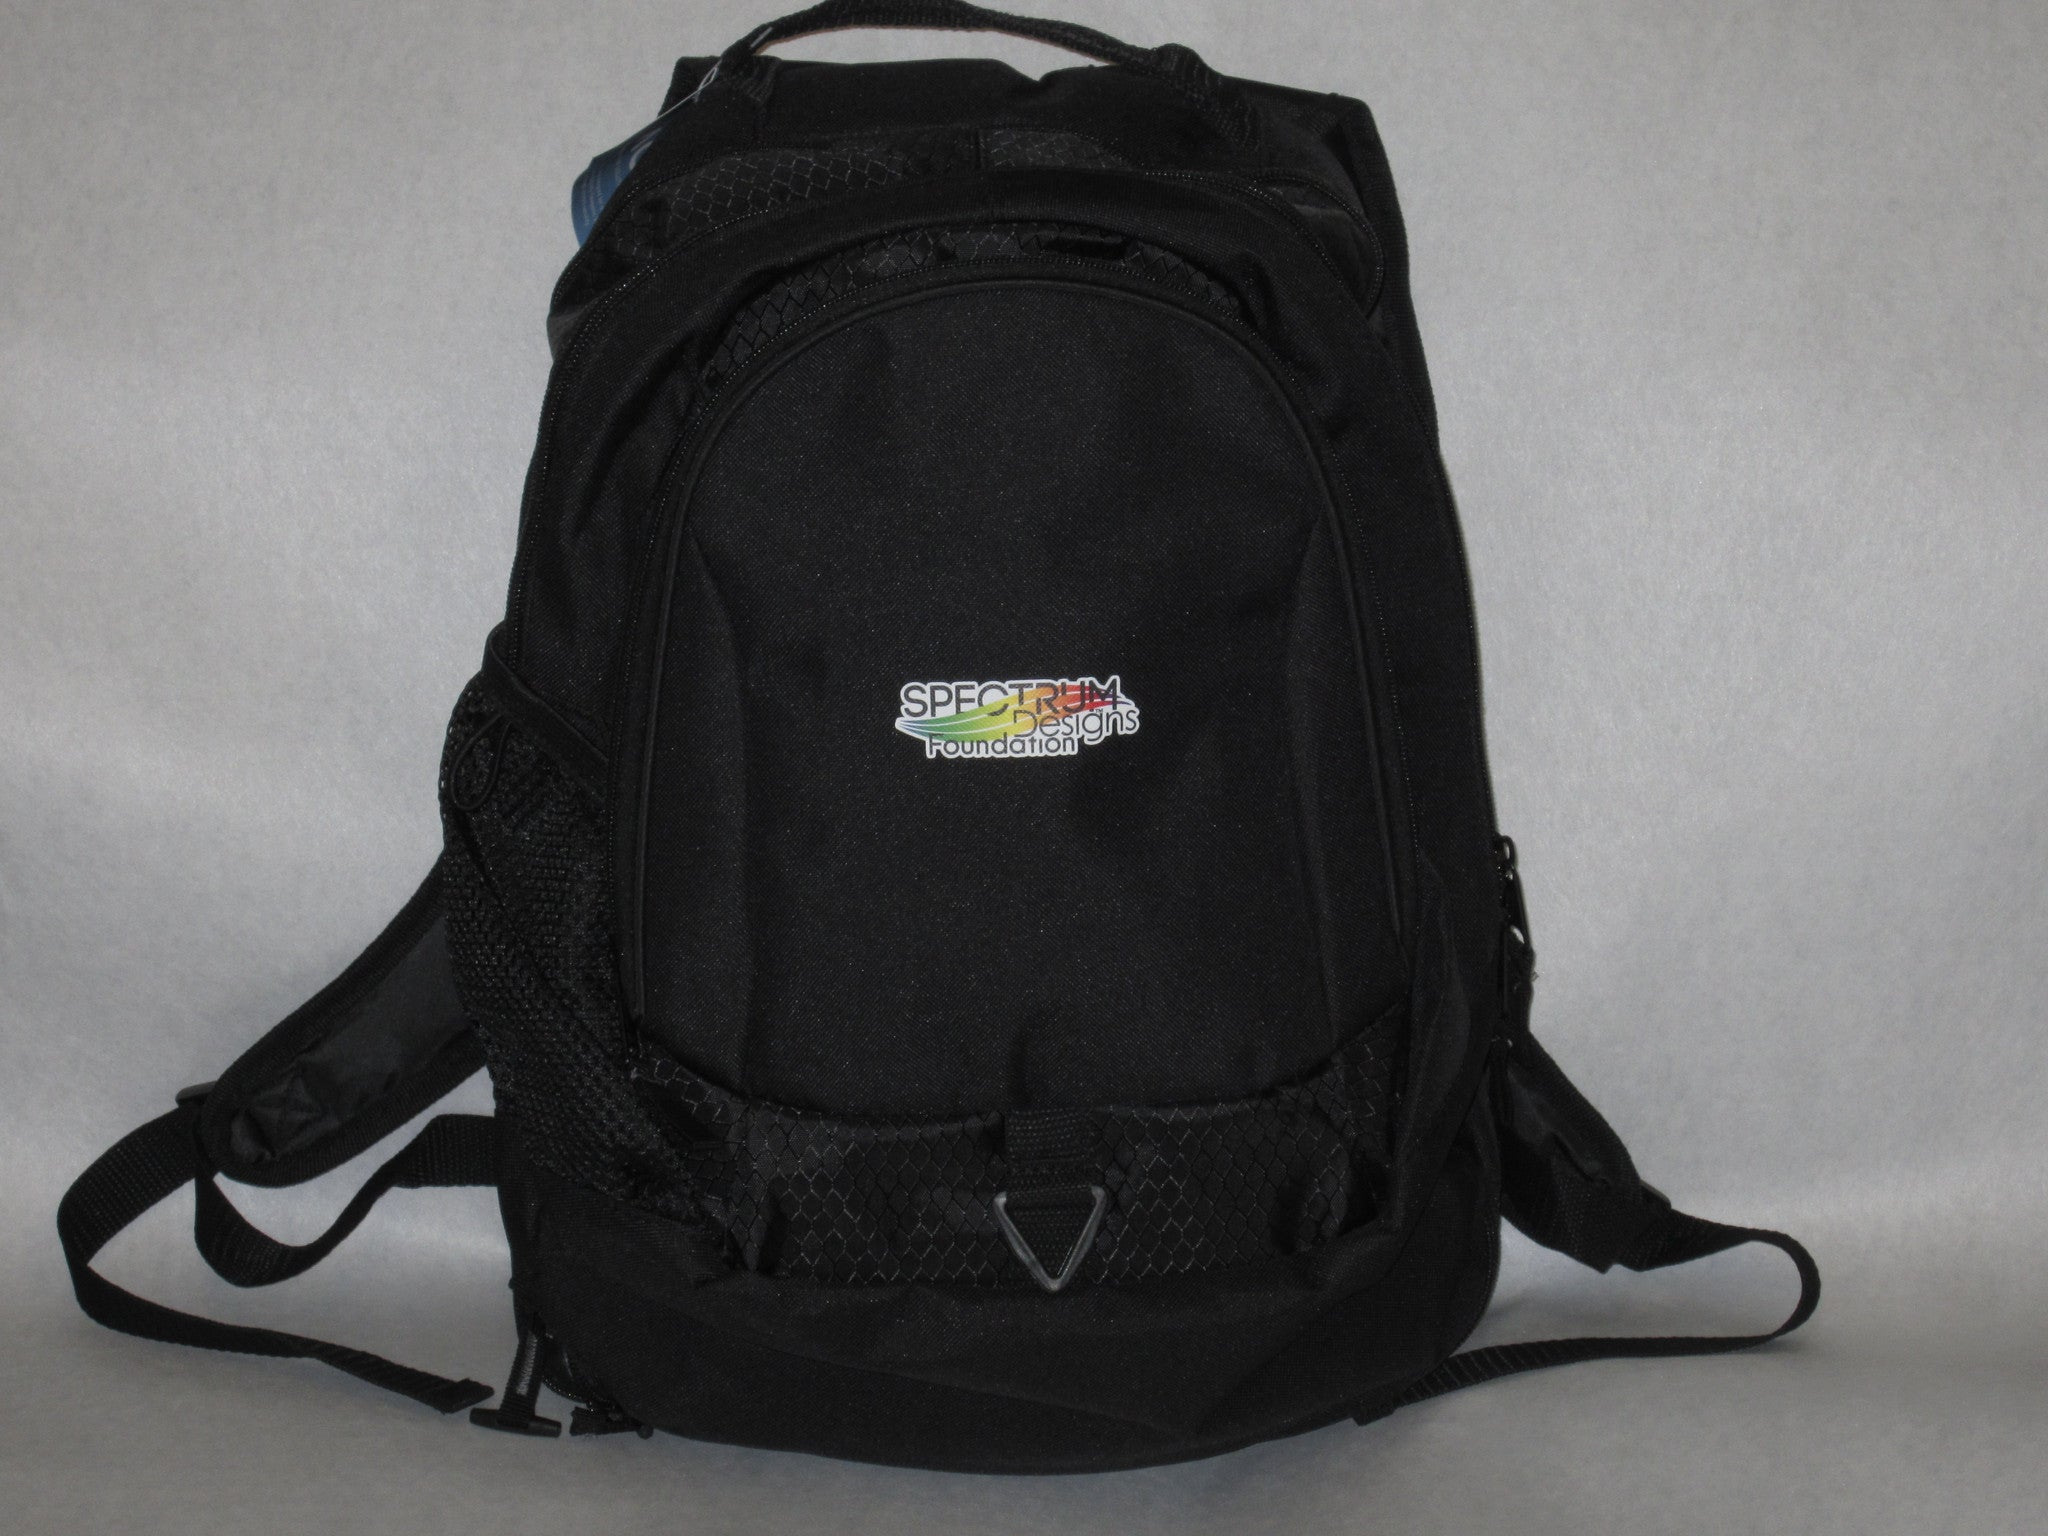 Spectrum Designs Backpack